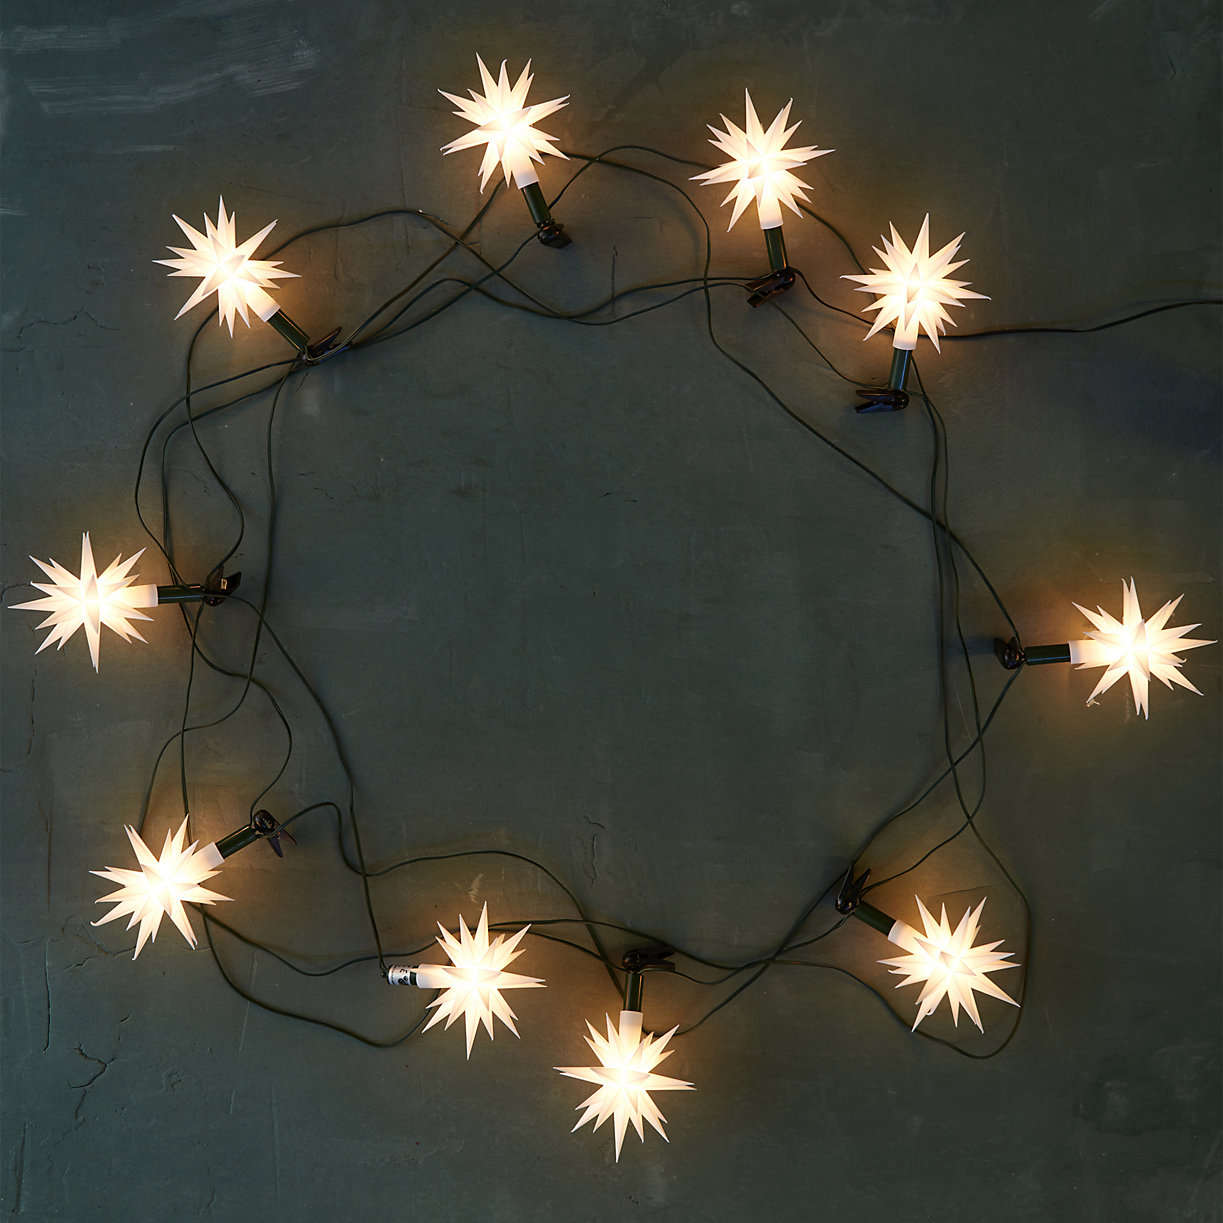 herrnhut-star-shaped-christmas-holiday-lights-from-terrain